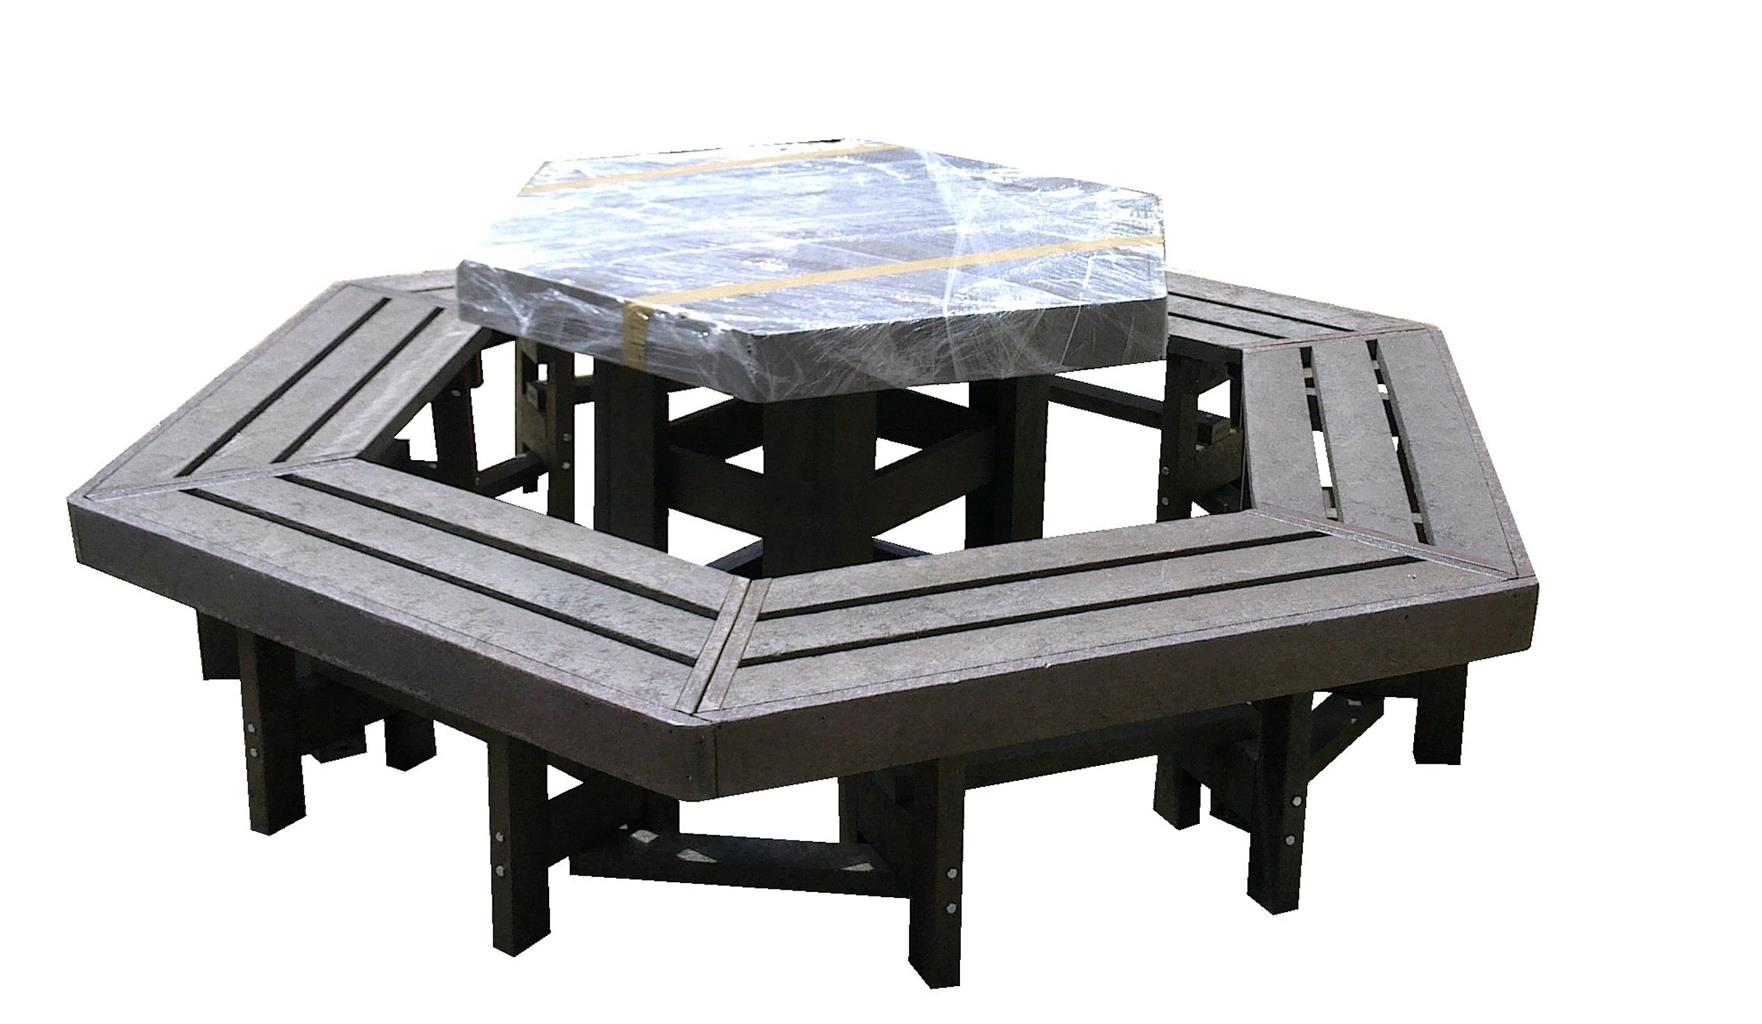 Picnic Tables and Park Benches